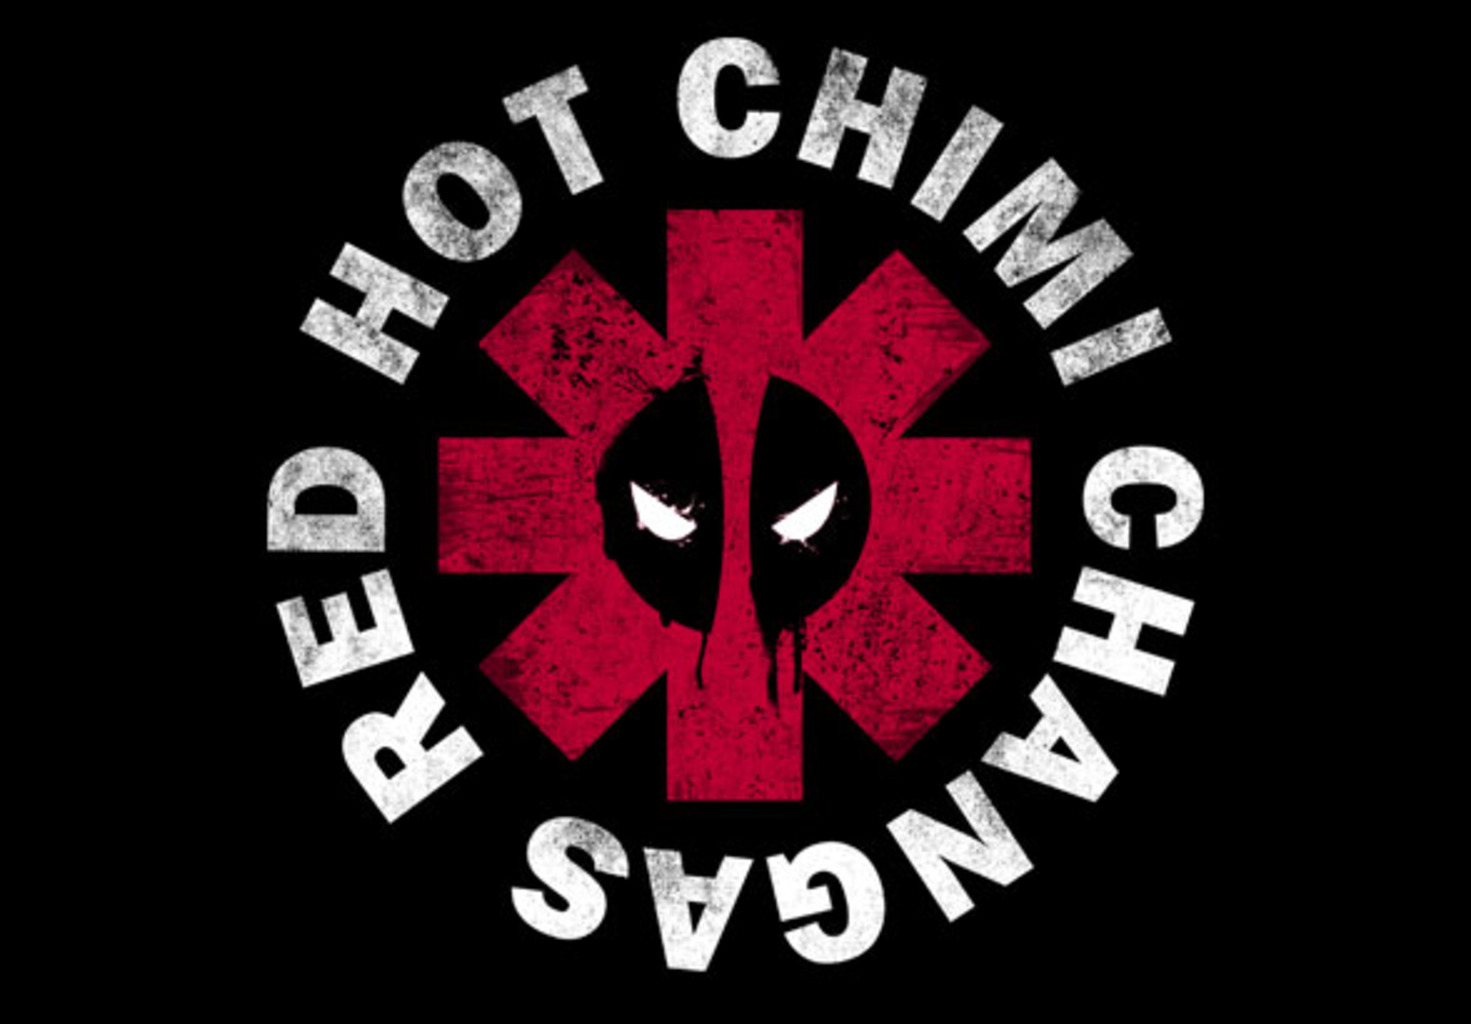 teeVillain: Red Hot Chimi Changas